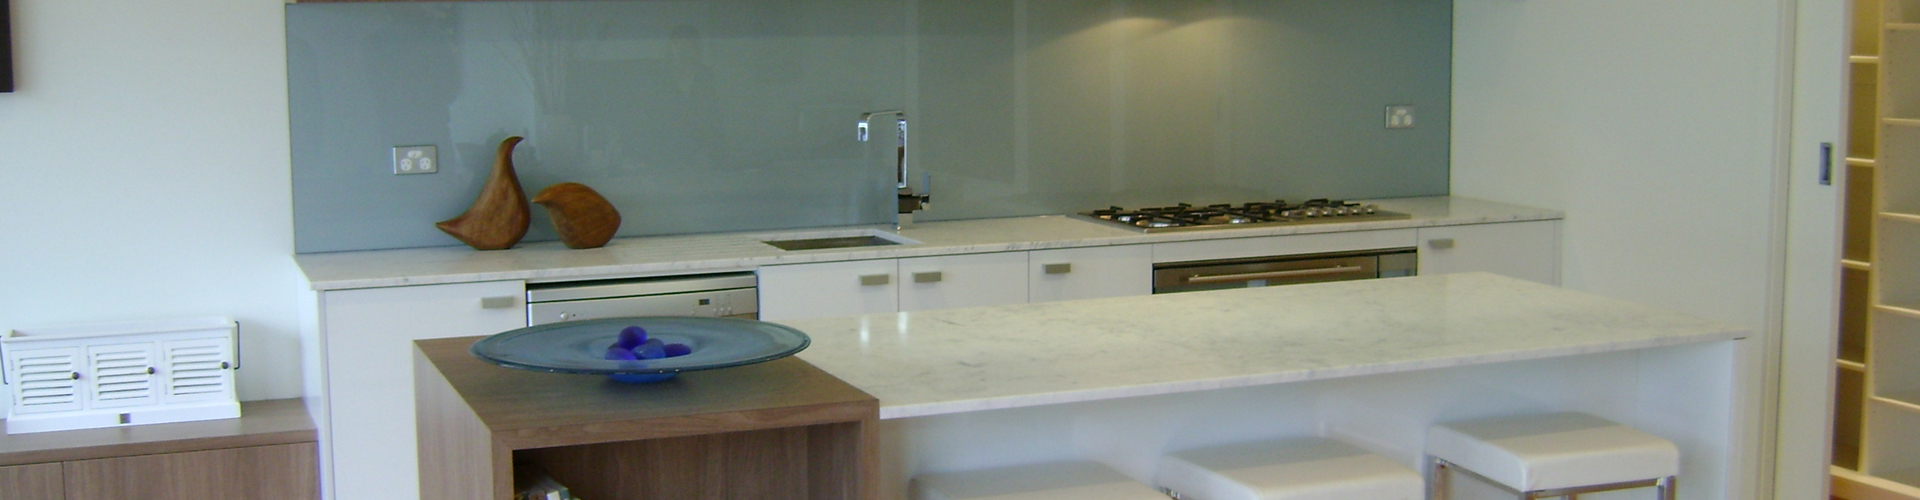 Benchtop Melbourne Kitchen Benchtops Melbourne New Benchtop Installations